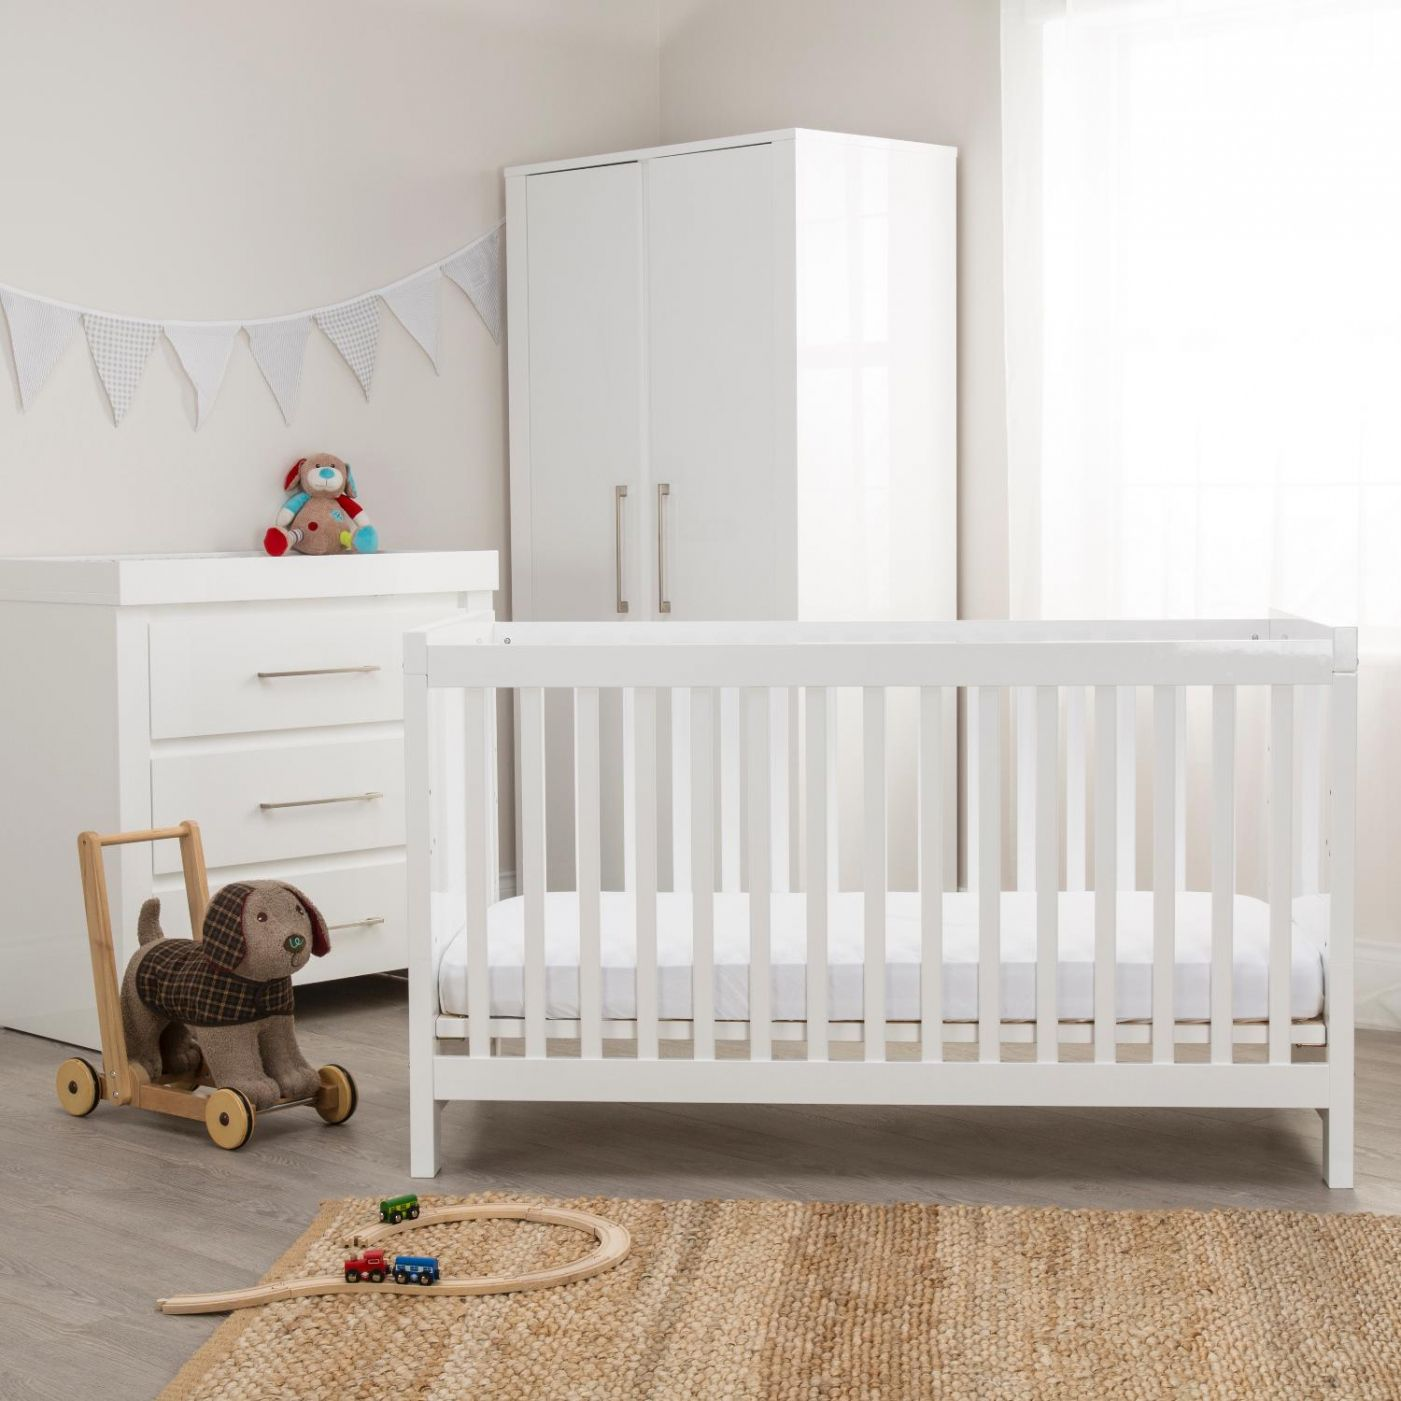 30 Baby Room Furniture Set Photos Of Bedrooms Interior Design